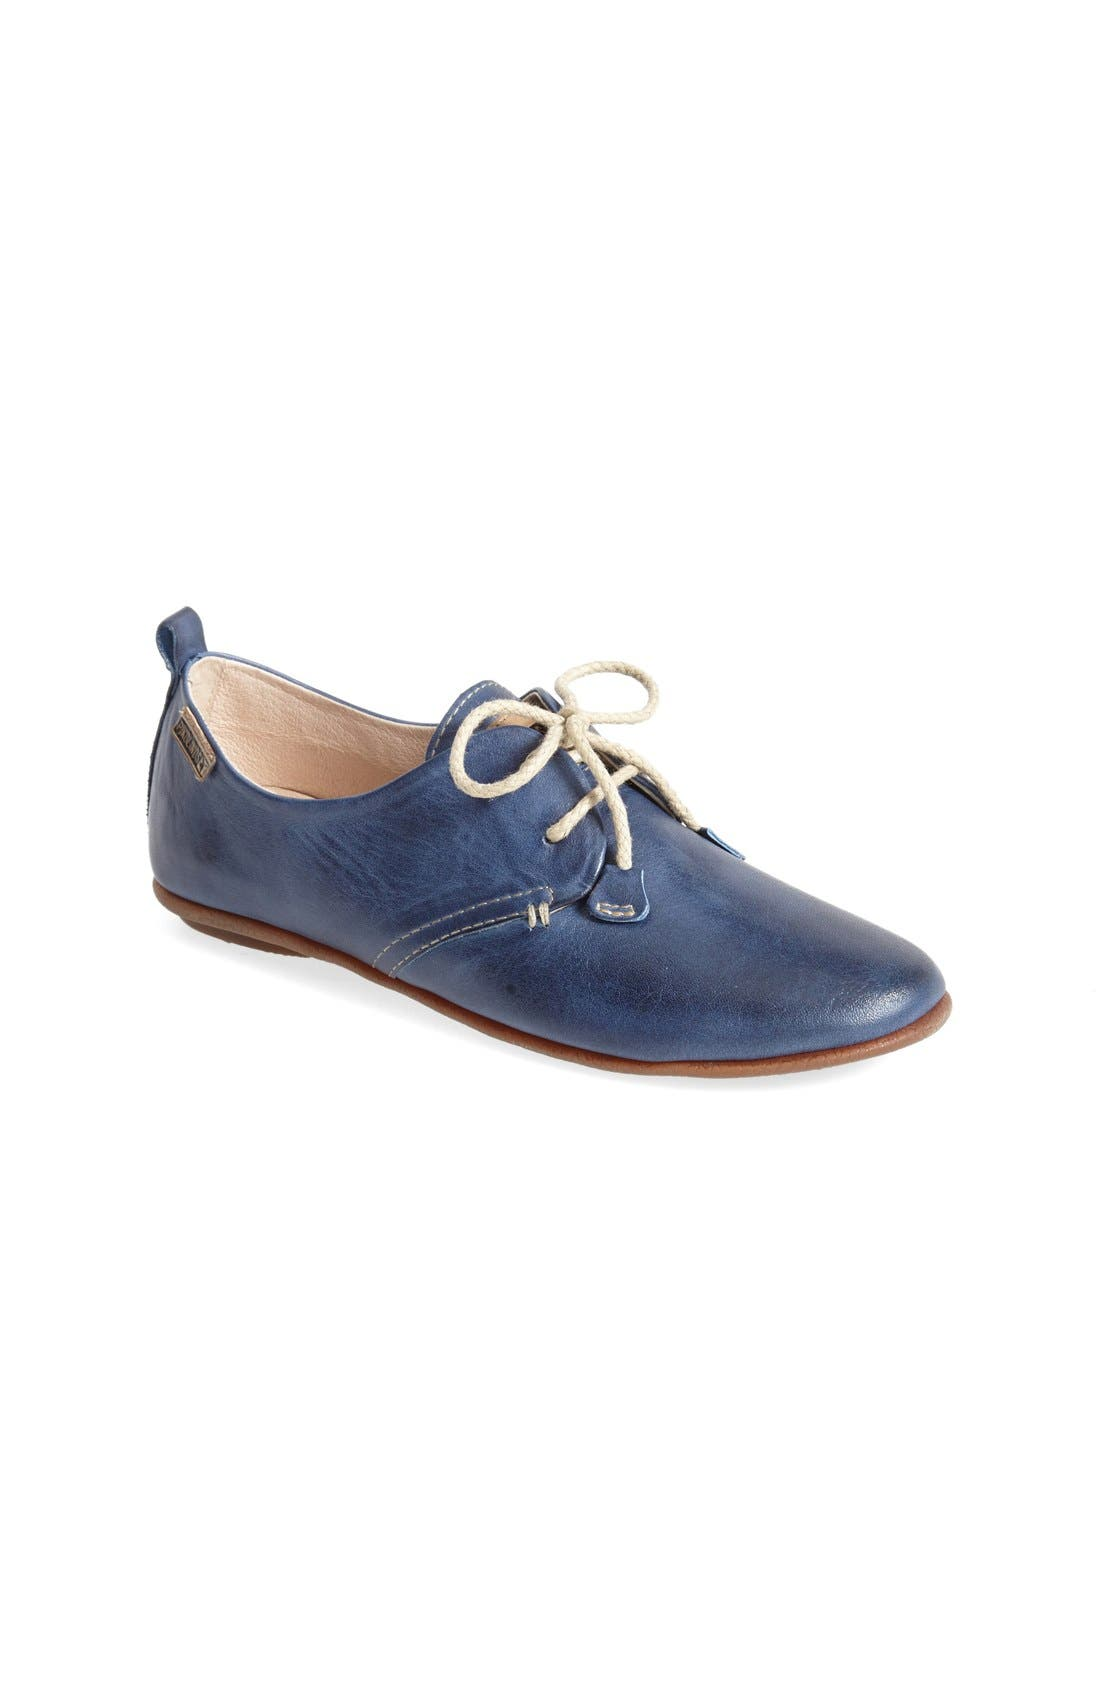 Alternate Image 1 Selected - PIKOLINOS Calabria Derby Flat (Women)